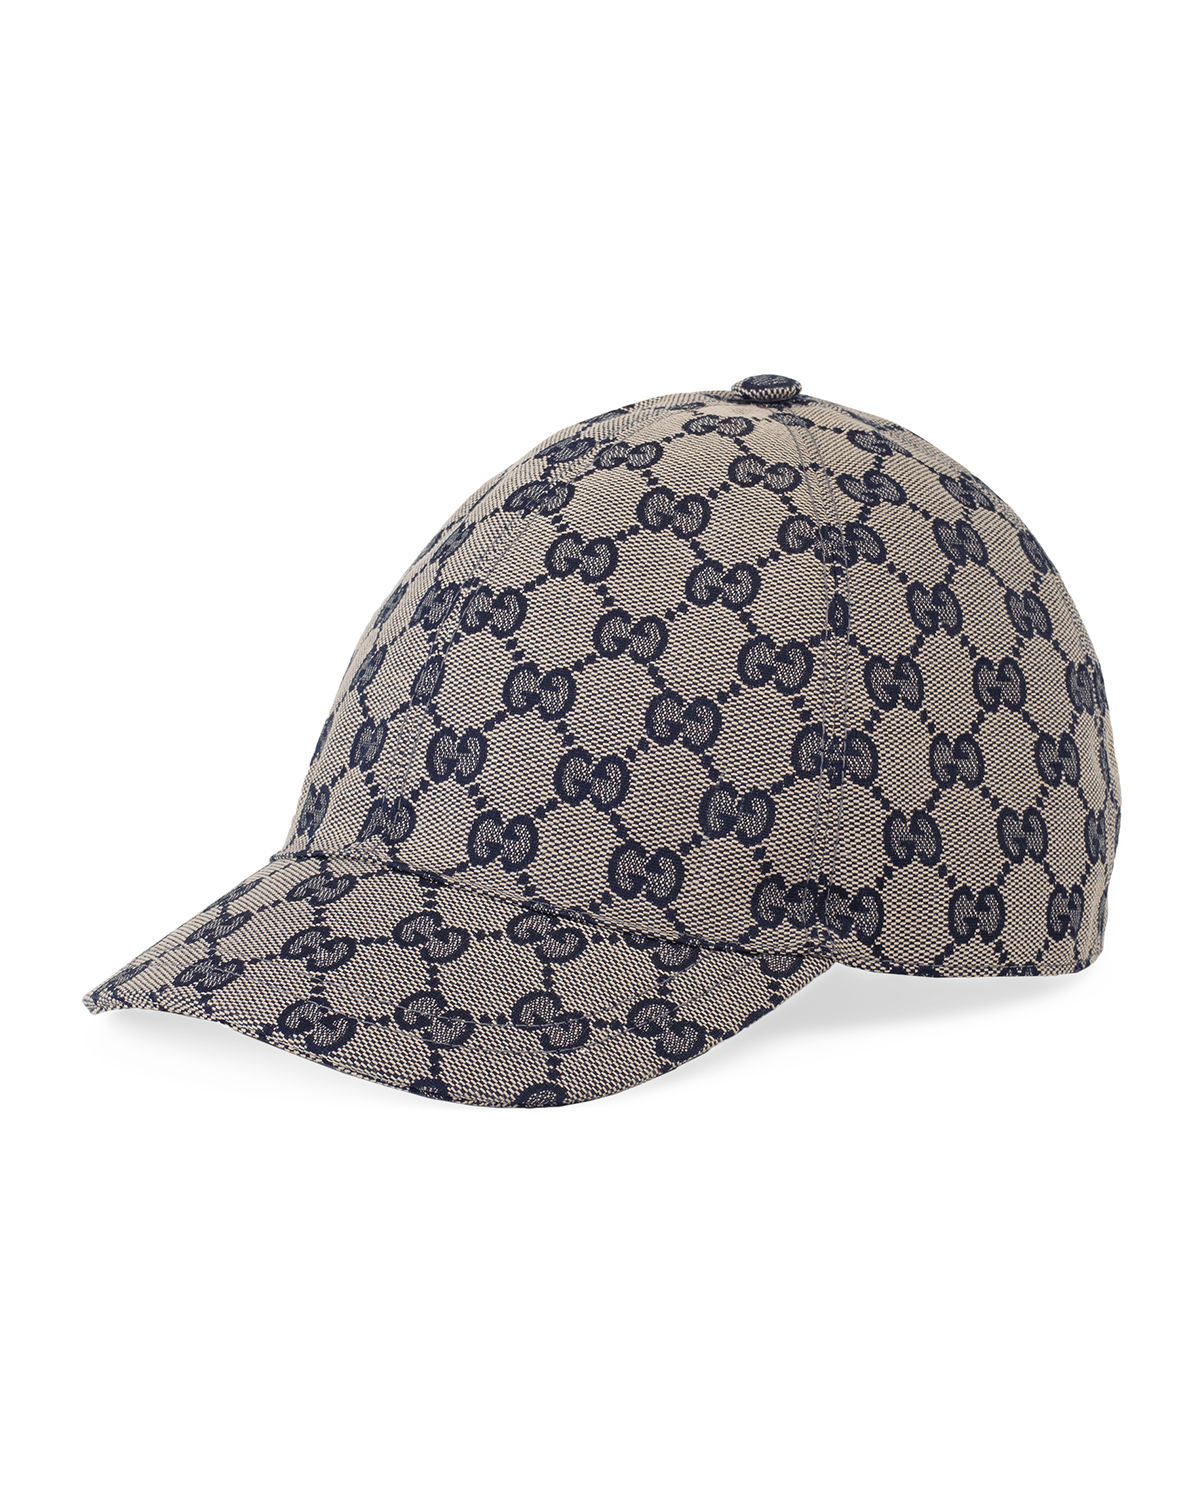 0daa57116b6 Gucci GG Supreme Canvas Baseball Hat